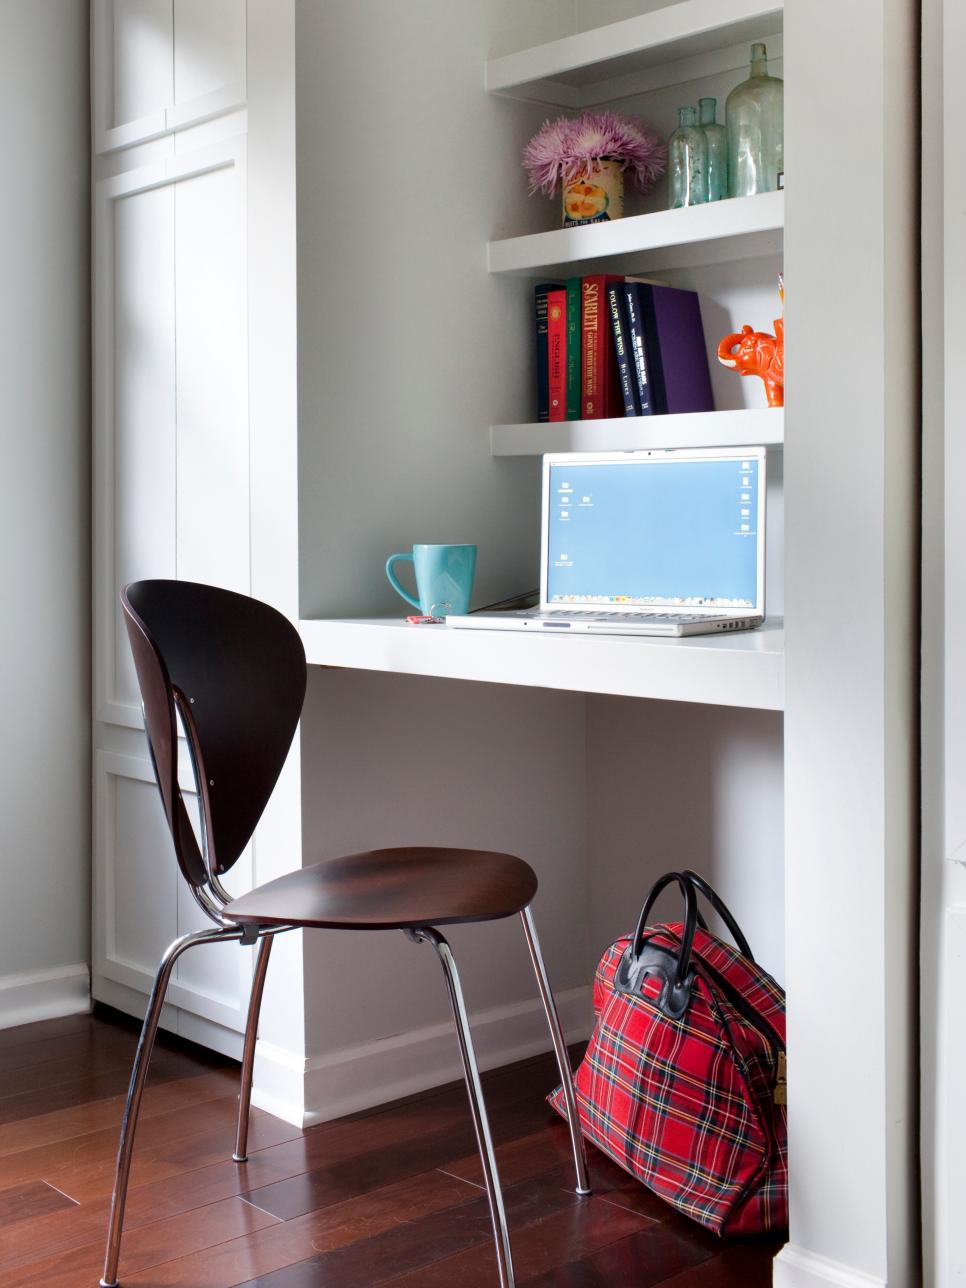 Small Desk For Small Bedroom 10 Smart Design Ideas For Small Spaces Hgtv